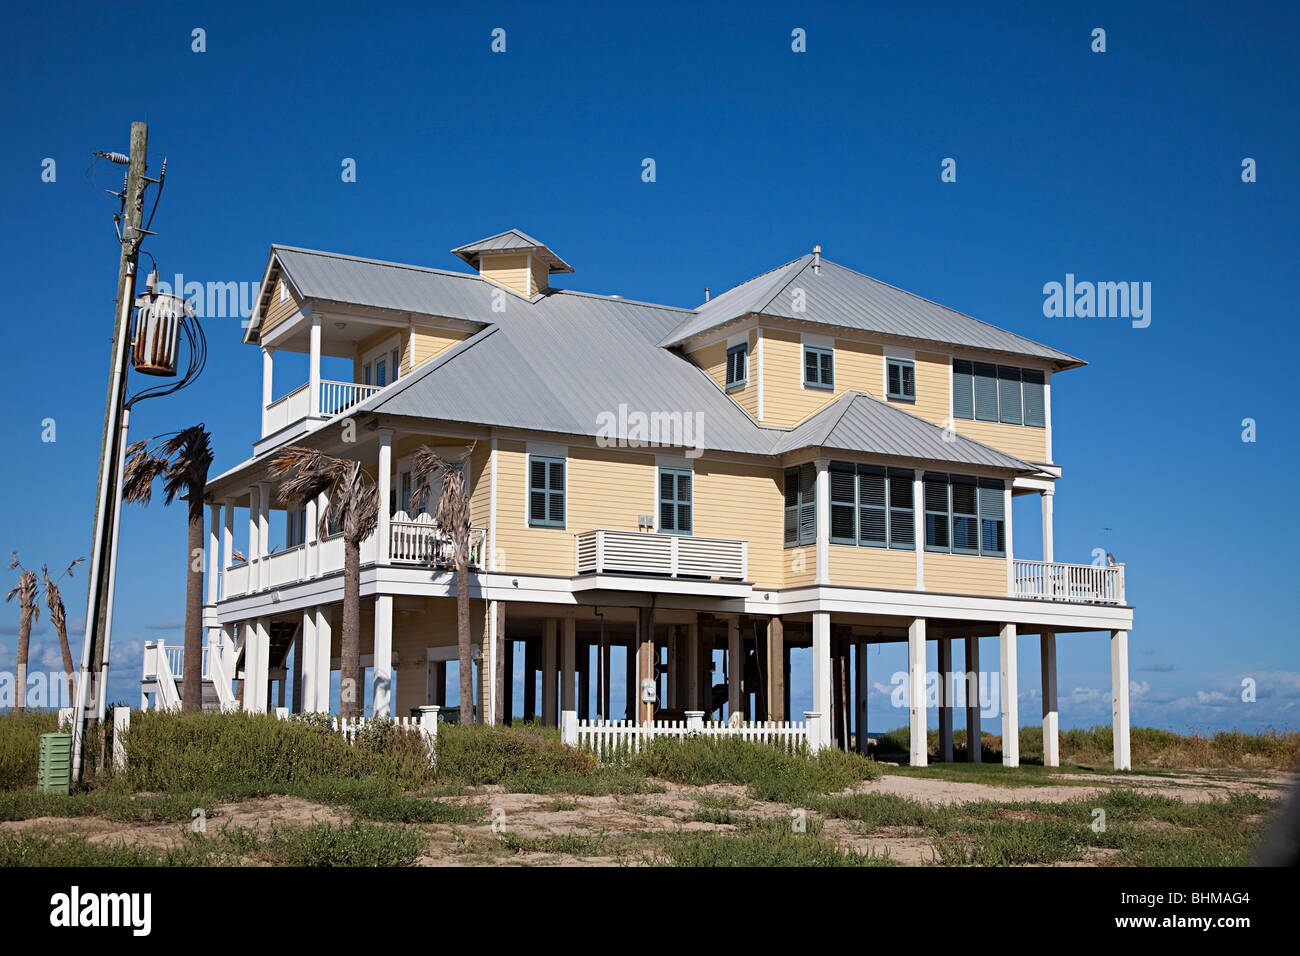 Wooden house on stilts on beach front galveston texas usa for Beach house designs usa